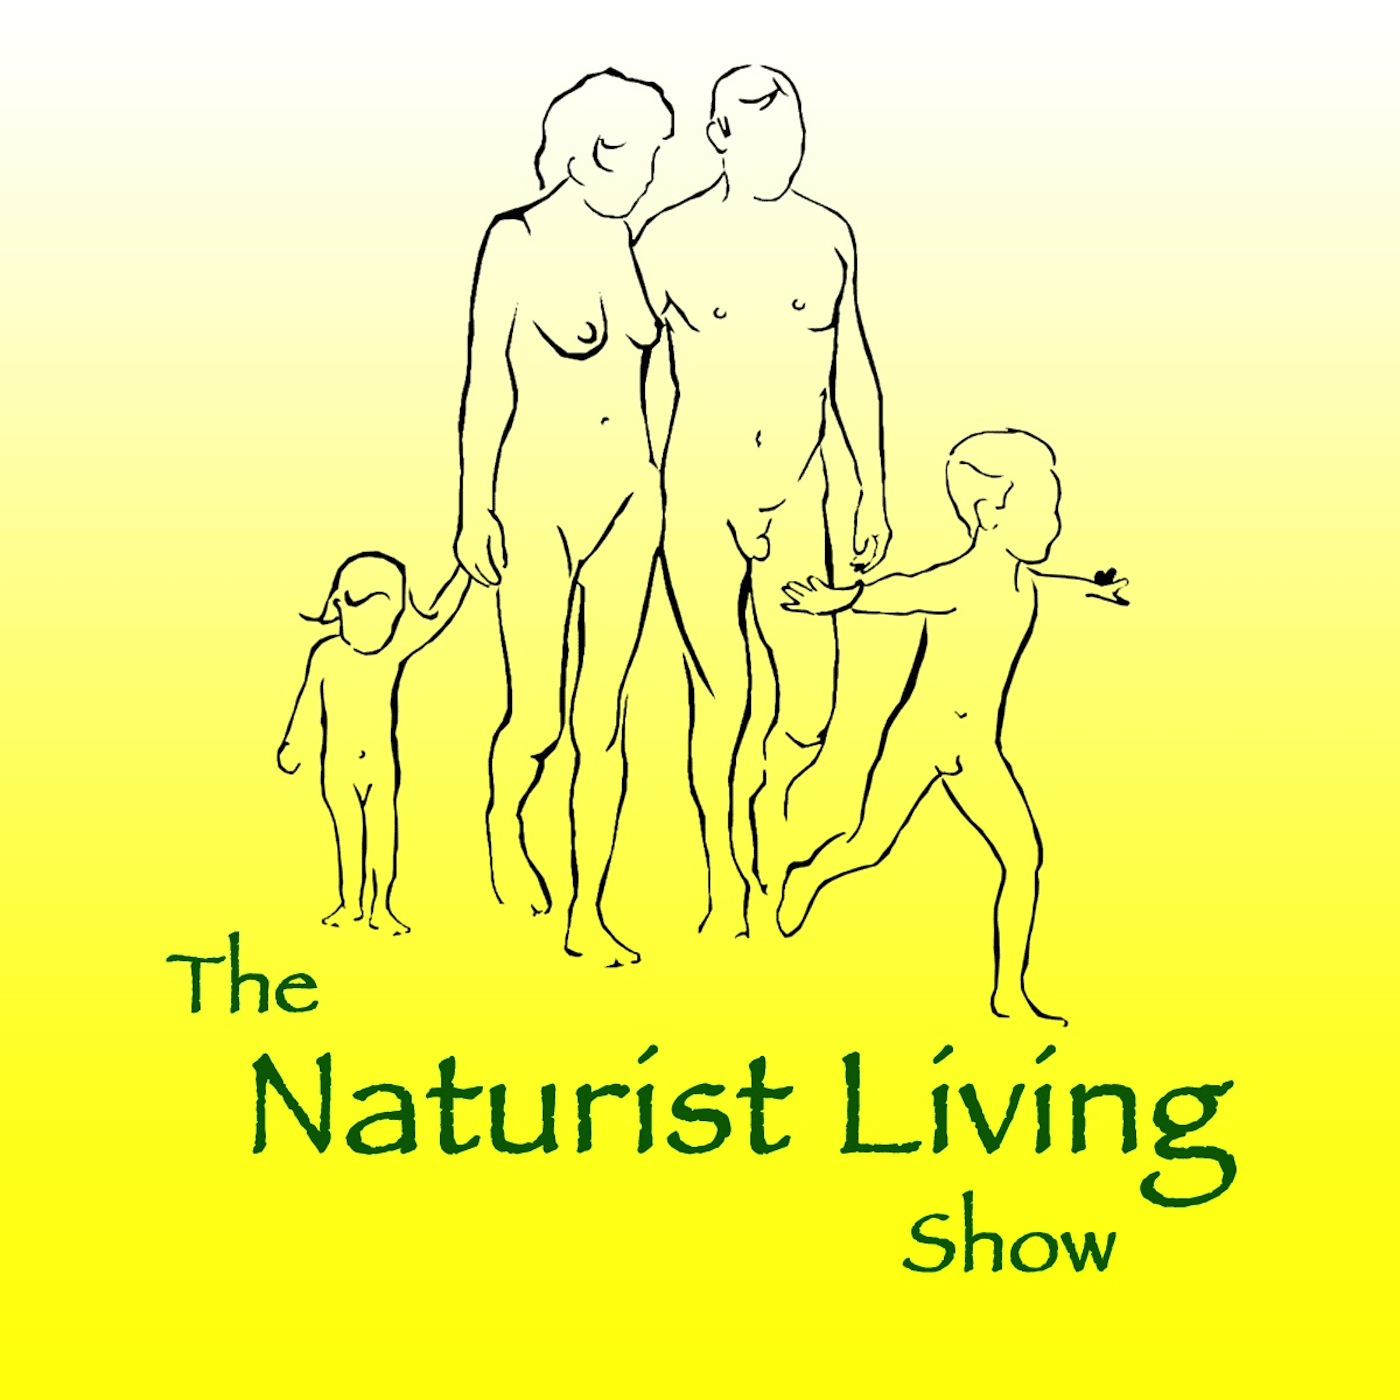 The Naturist Living Show - A podcast about naturism for naturists (nudism  and nudists to some people)